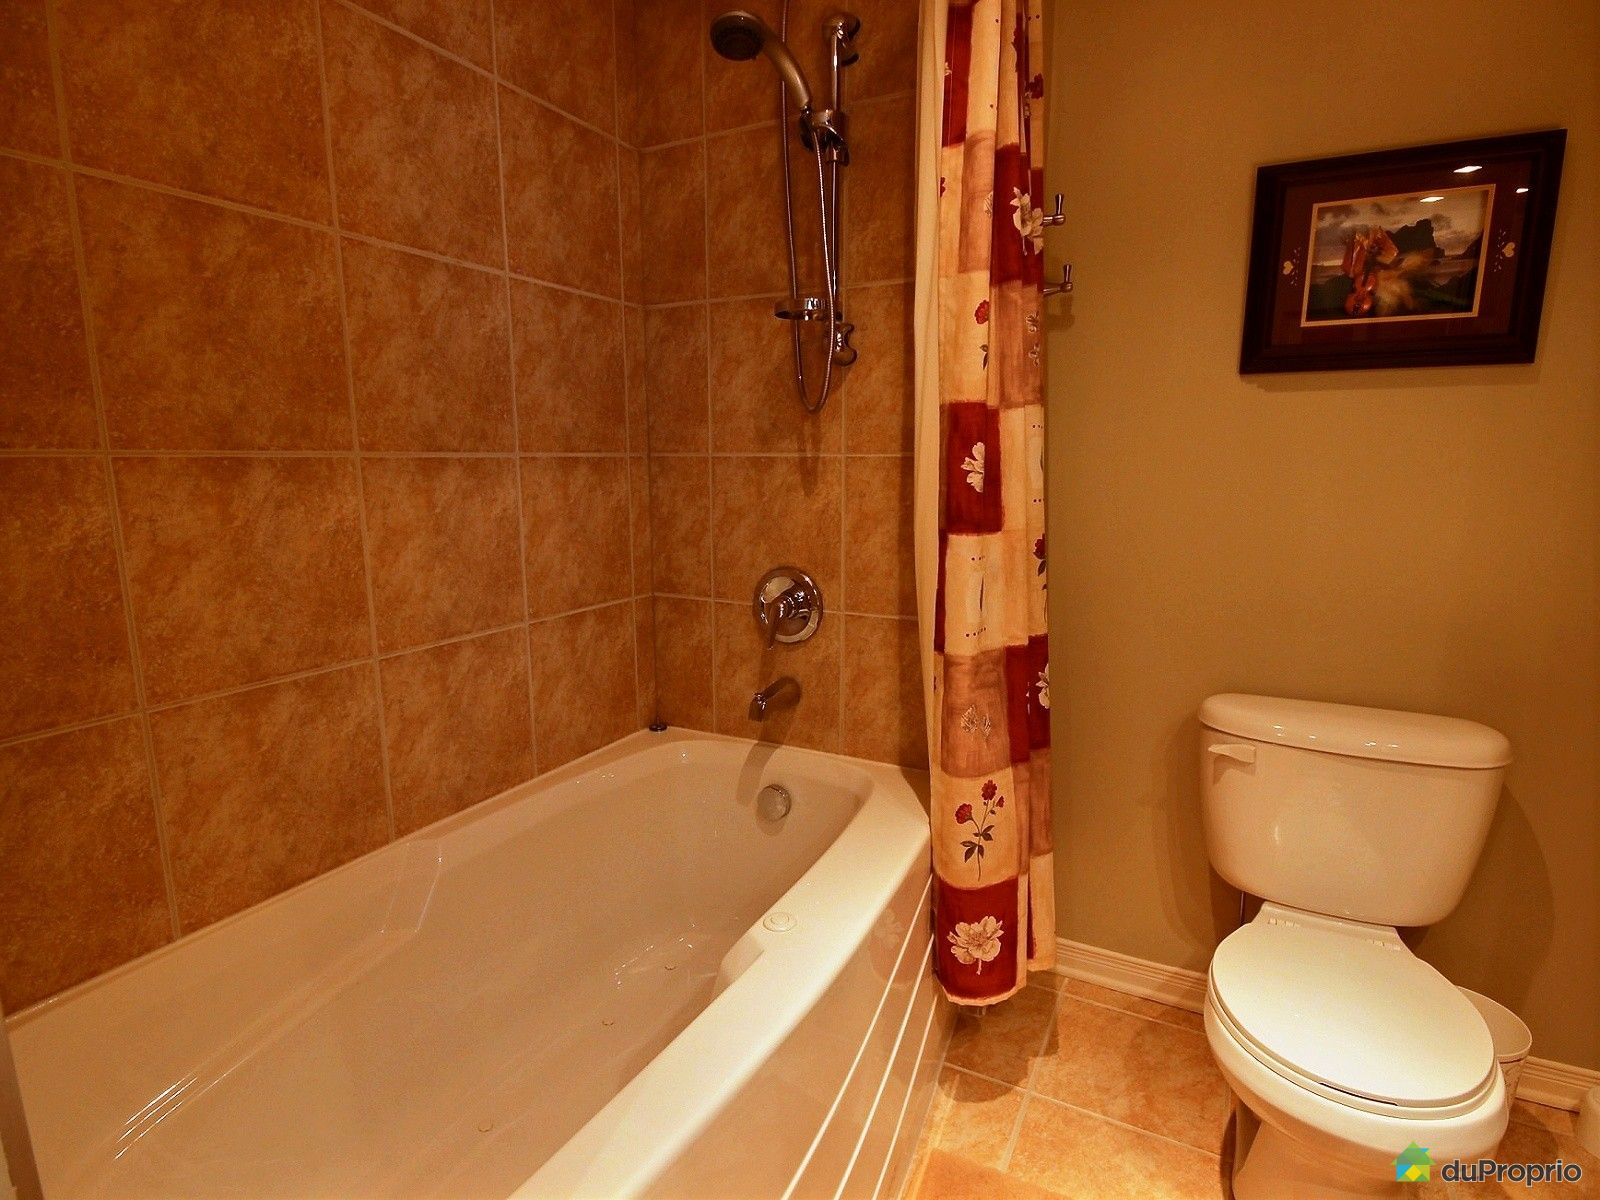 House sold in ste julie duproprio 539387 for Bathroom 7x12